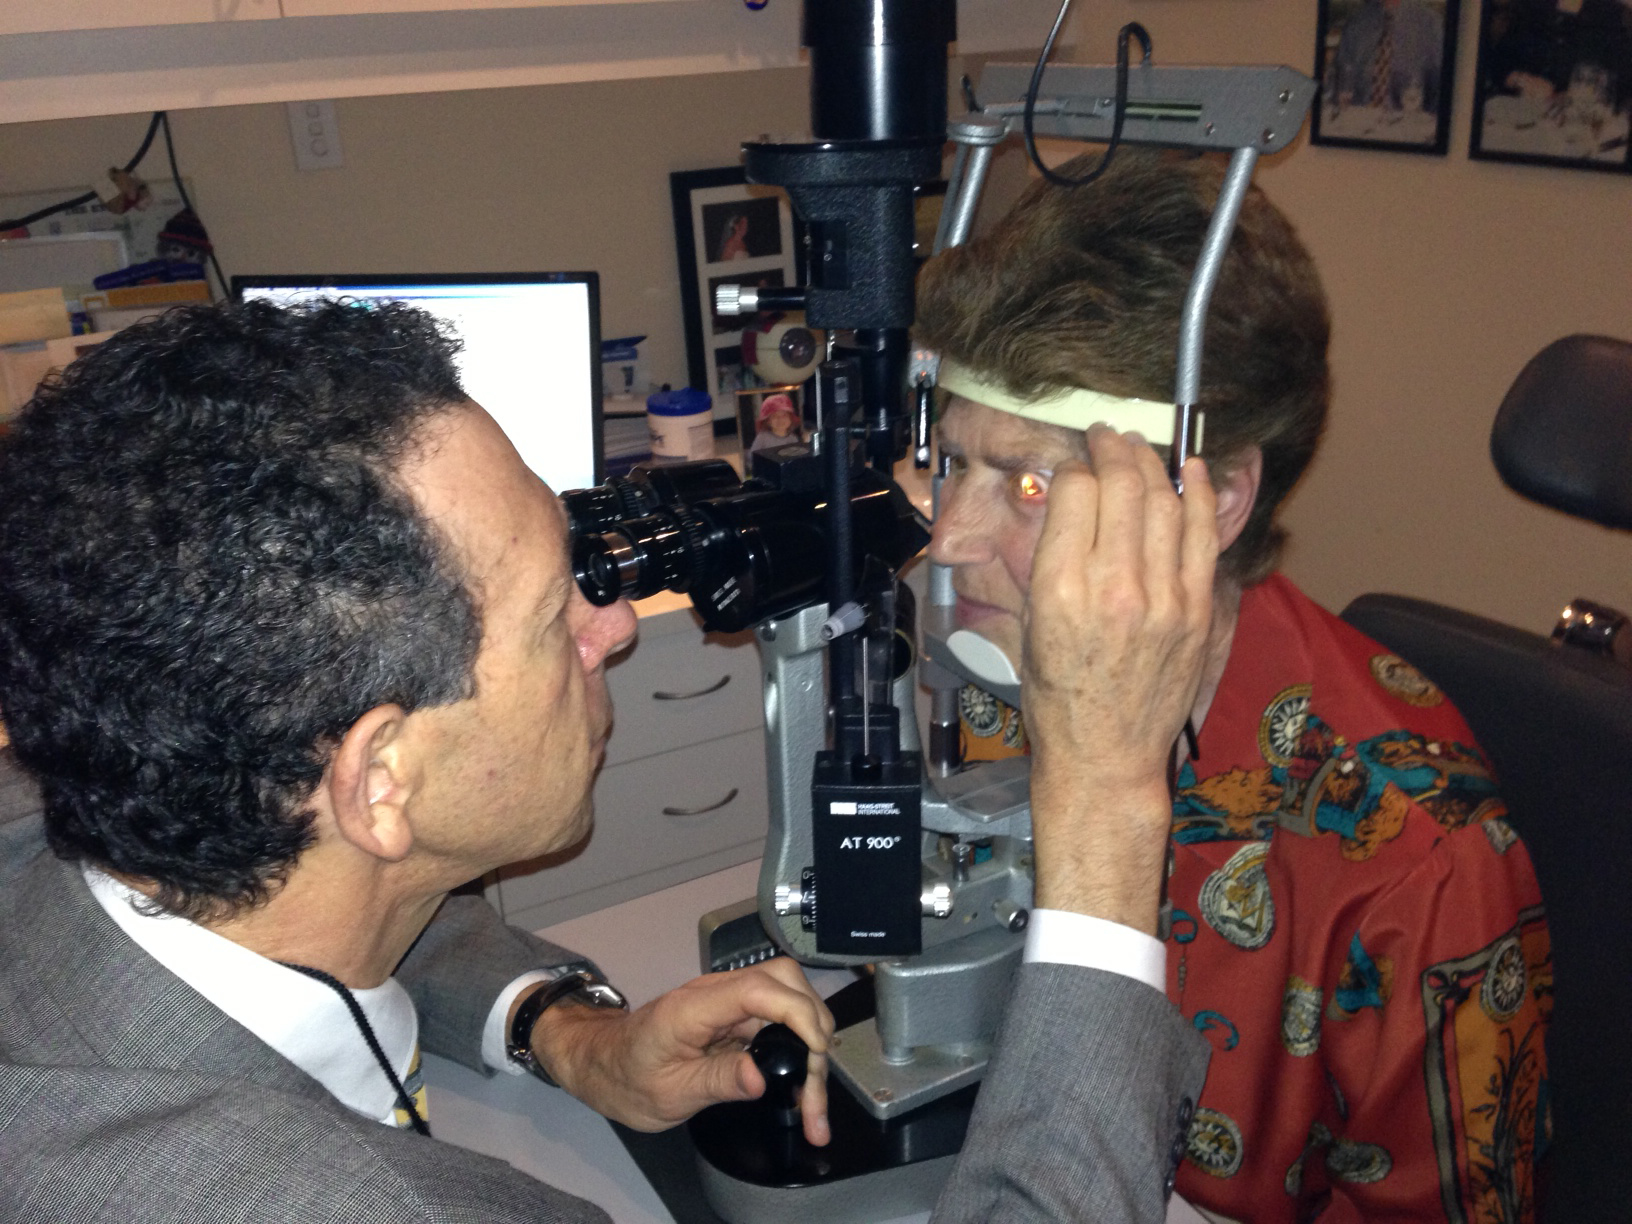 Glaucoma, the 'thief of sight' – World Glaucoma Week 2013